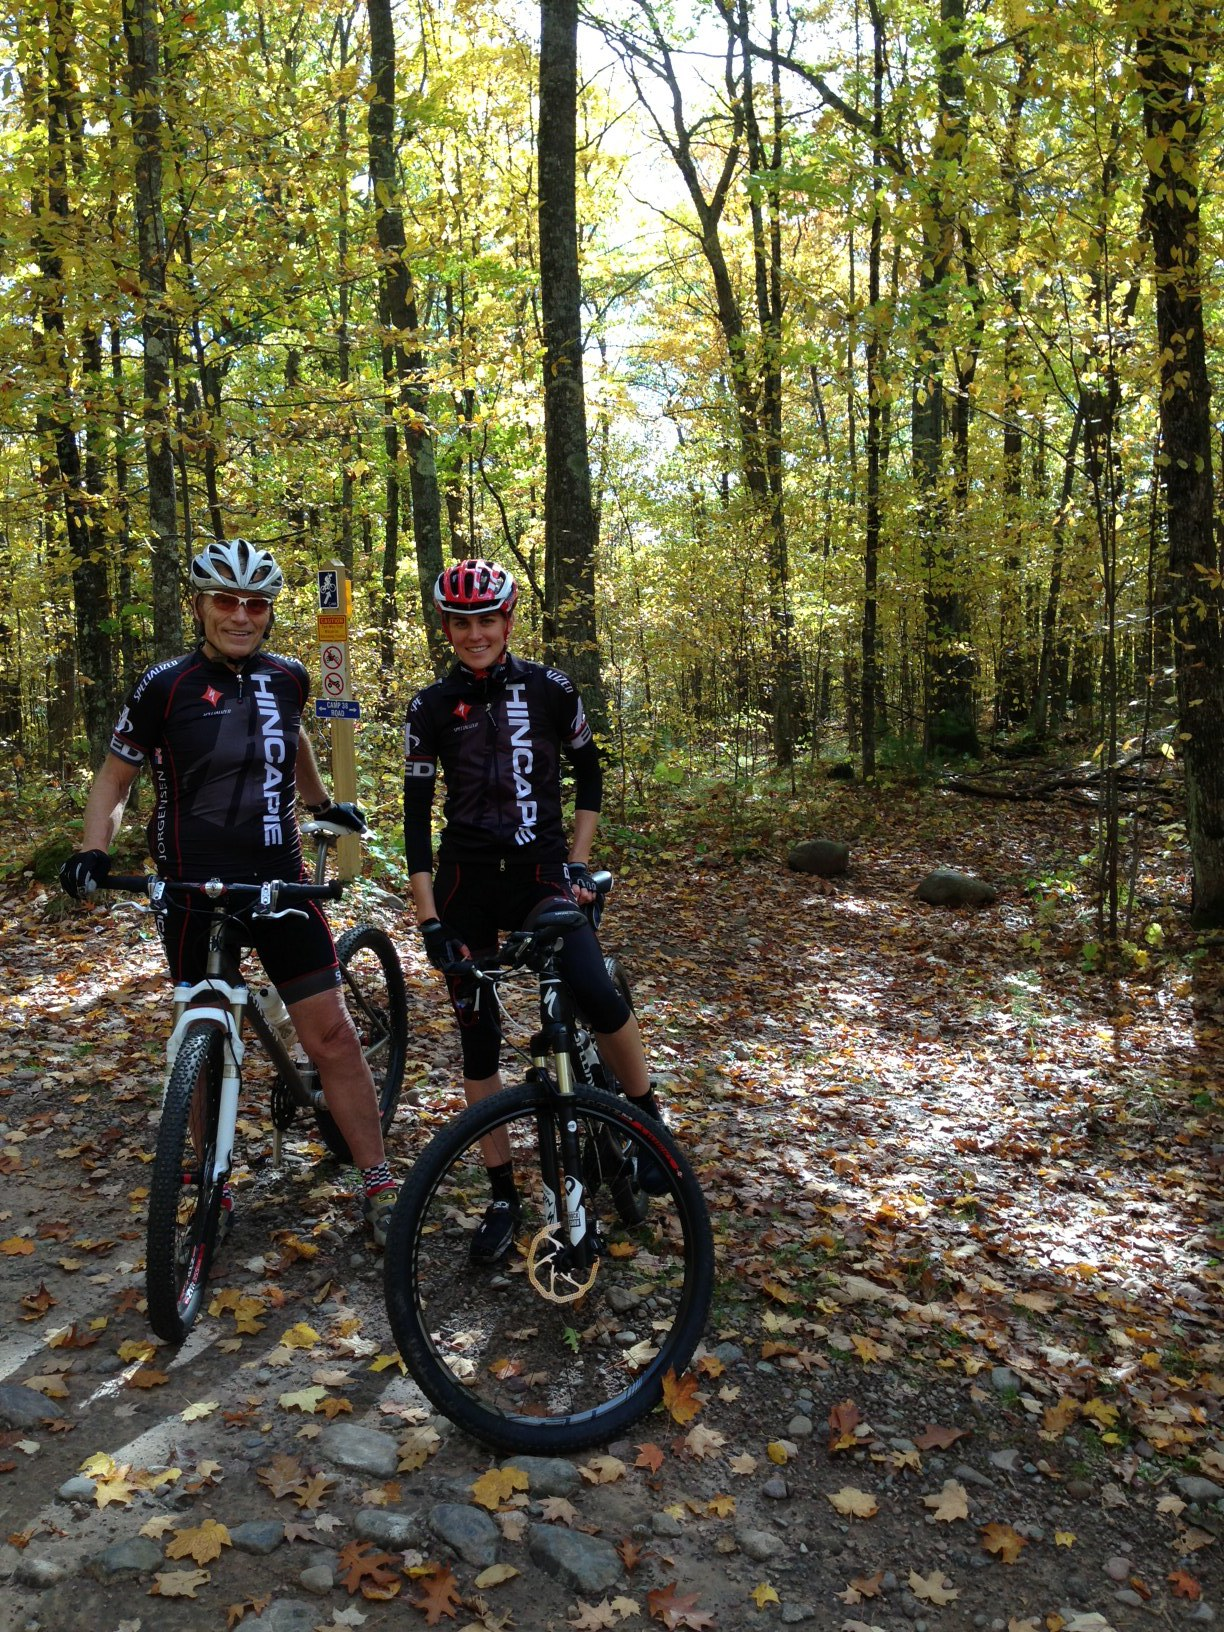 Dennis and Gwen biking in Cable, WI